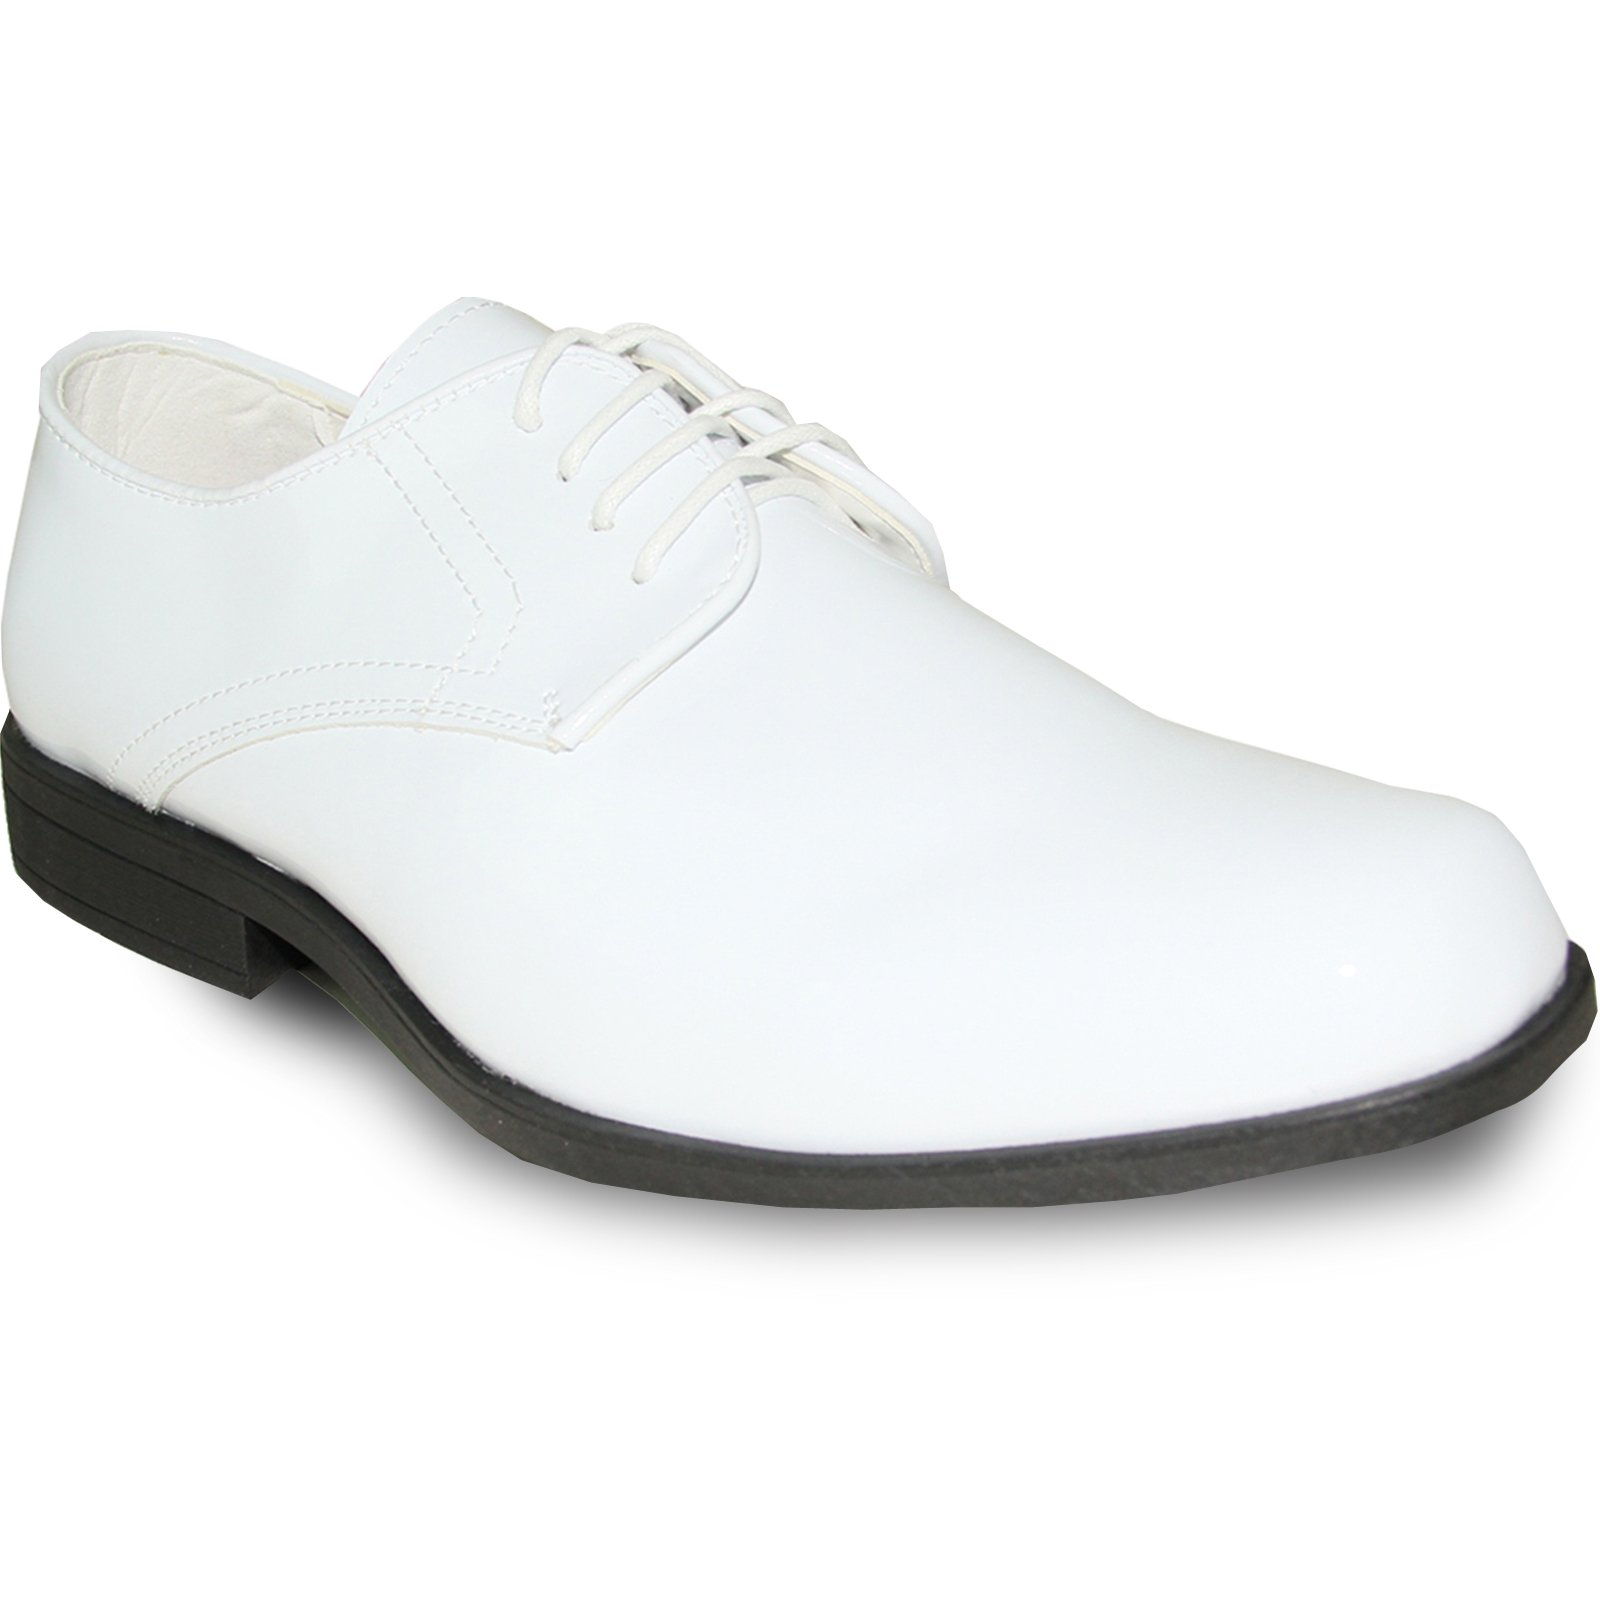 JEAN YVES Dress Shoe JY01 Classic Tuxedo for Wedding, Prom and Formal Event White Patent 12W